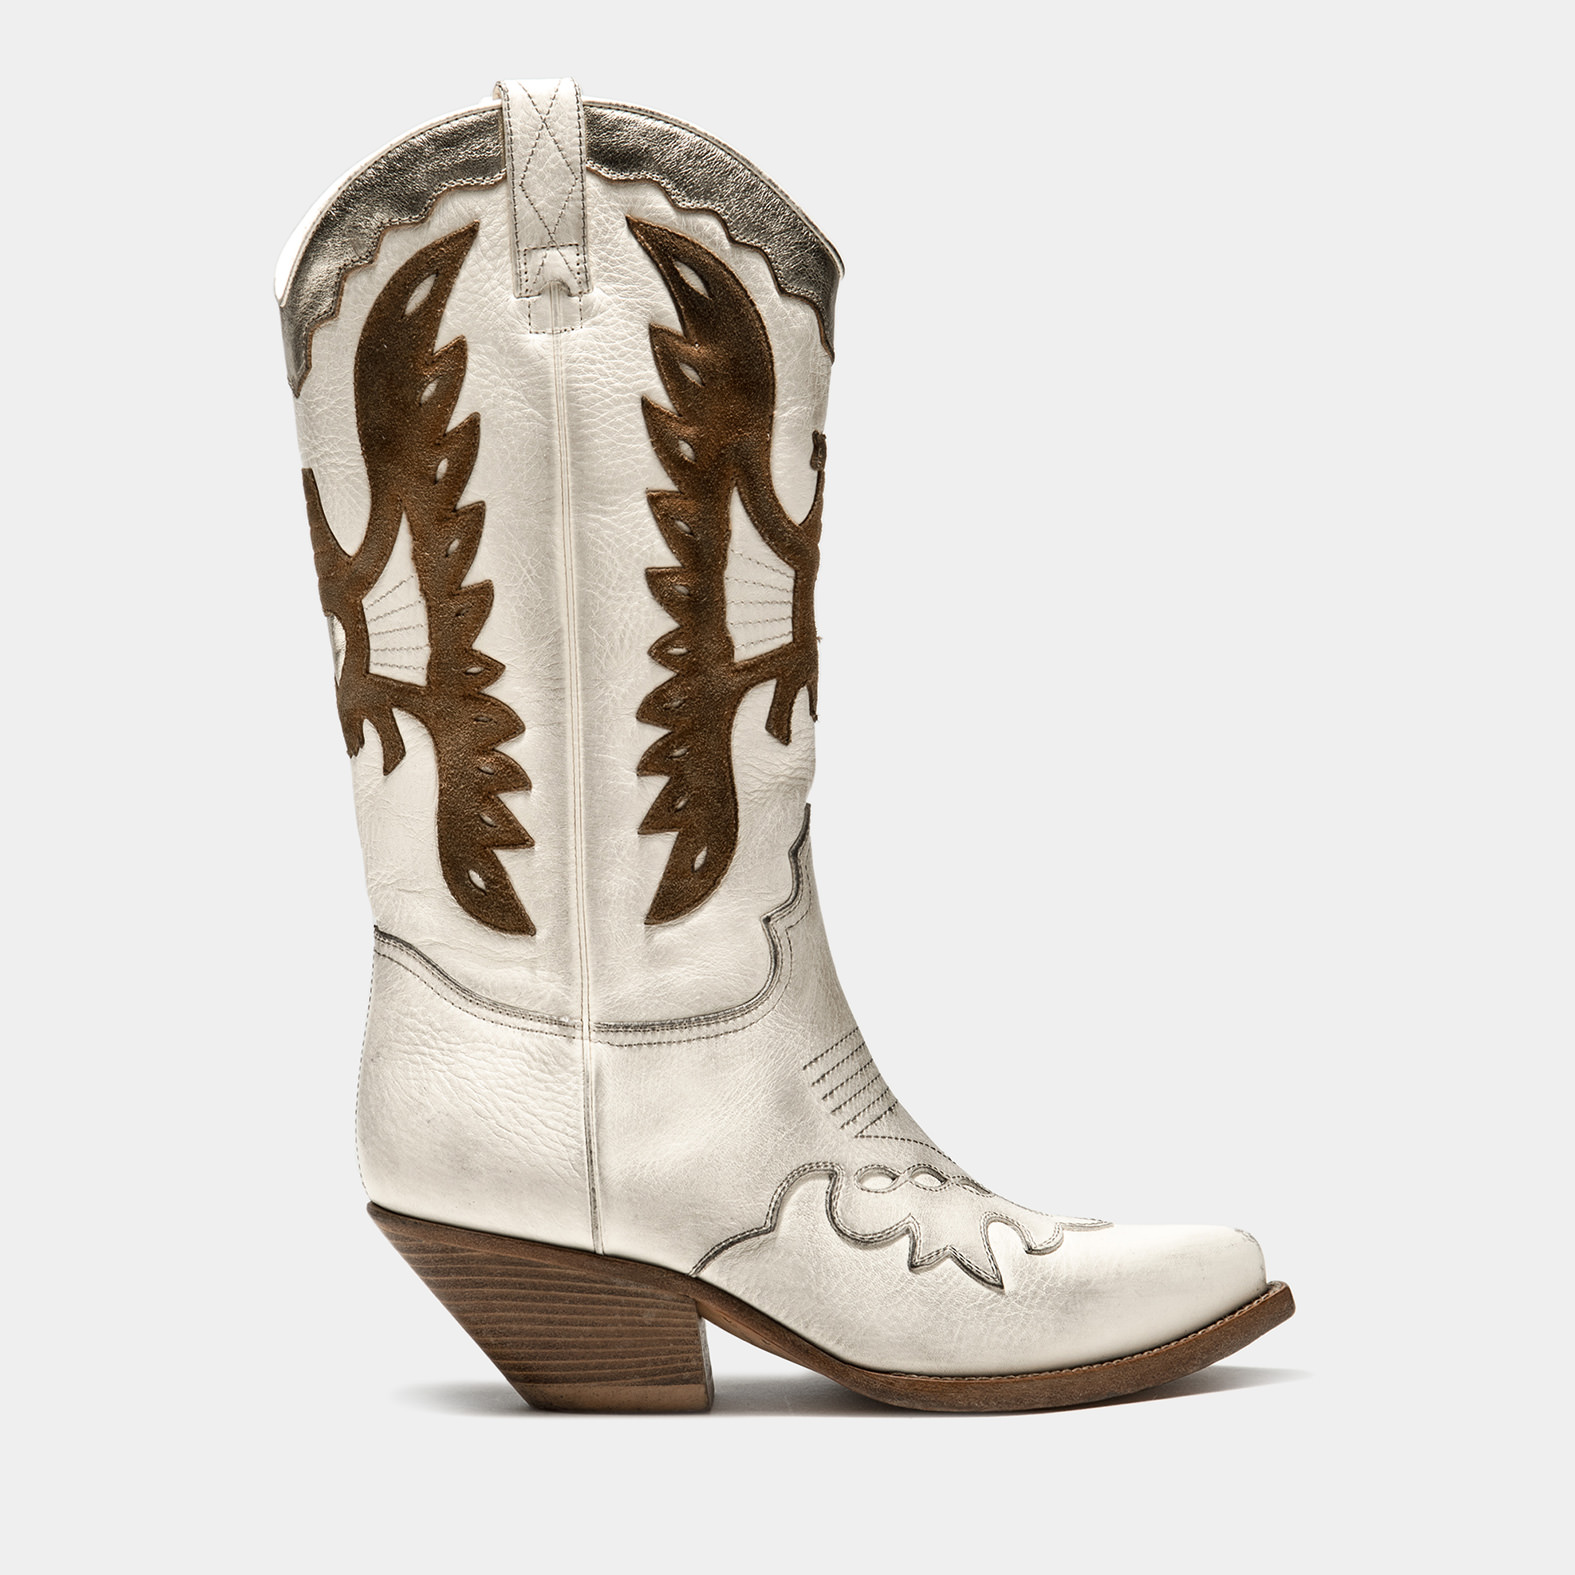 BUTTERO: HIGH HEEL ELISE DURANGO BOOTS IN USED-EFFECT CREAM WHITE LEATHER WITH INLAYS